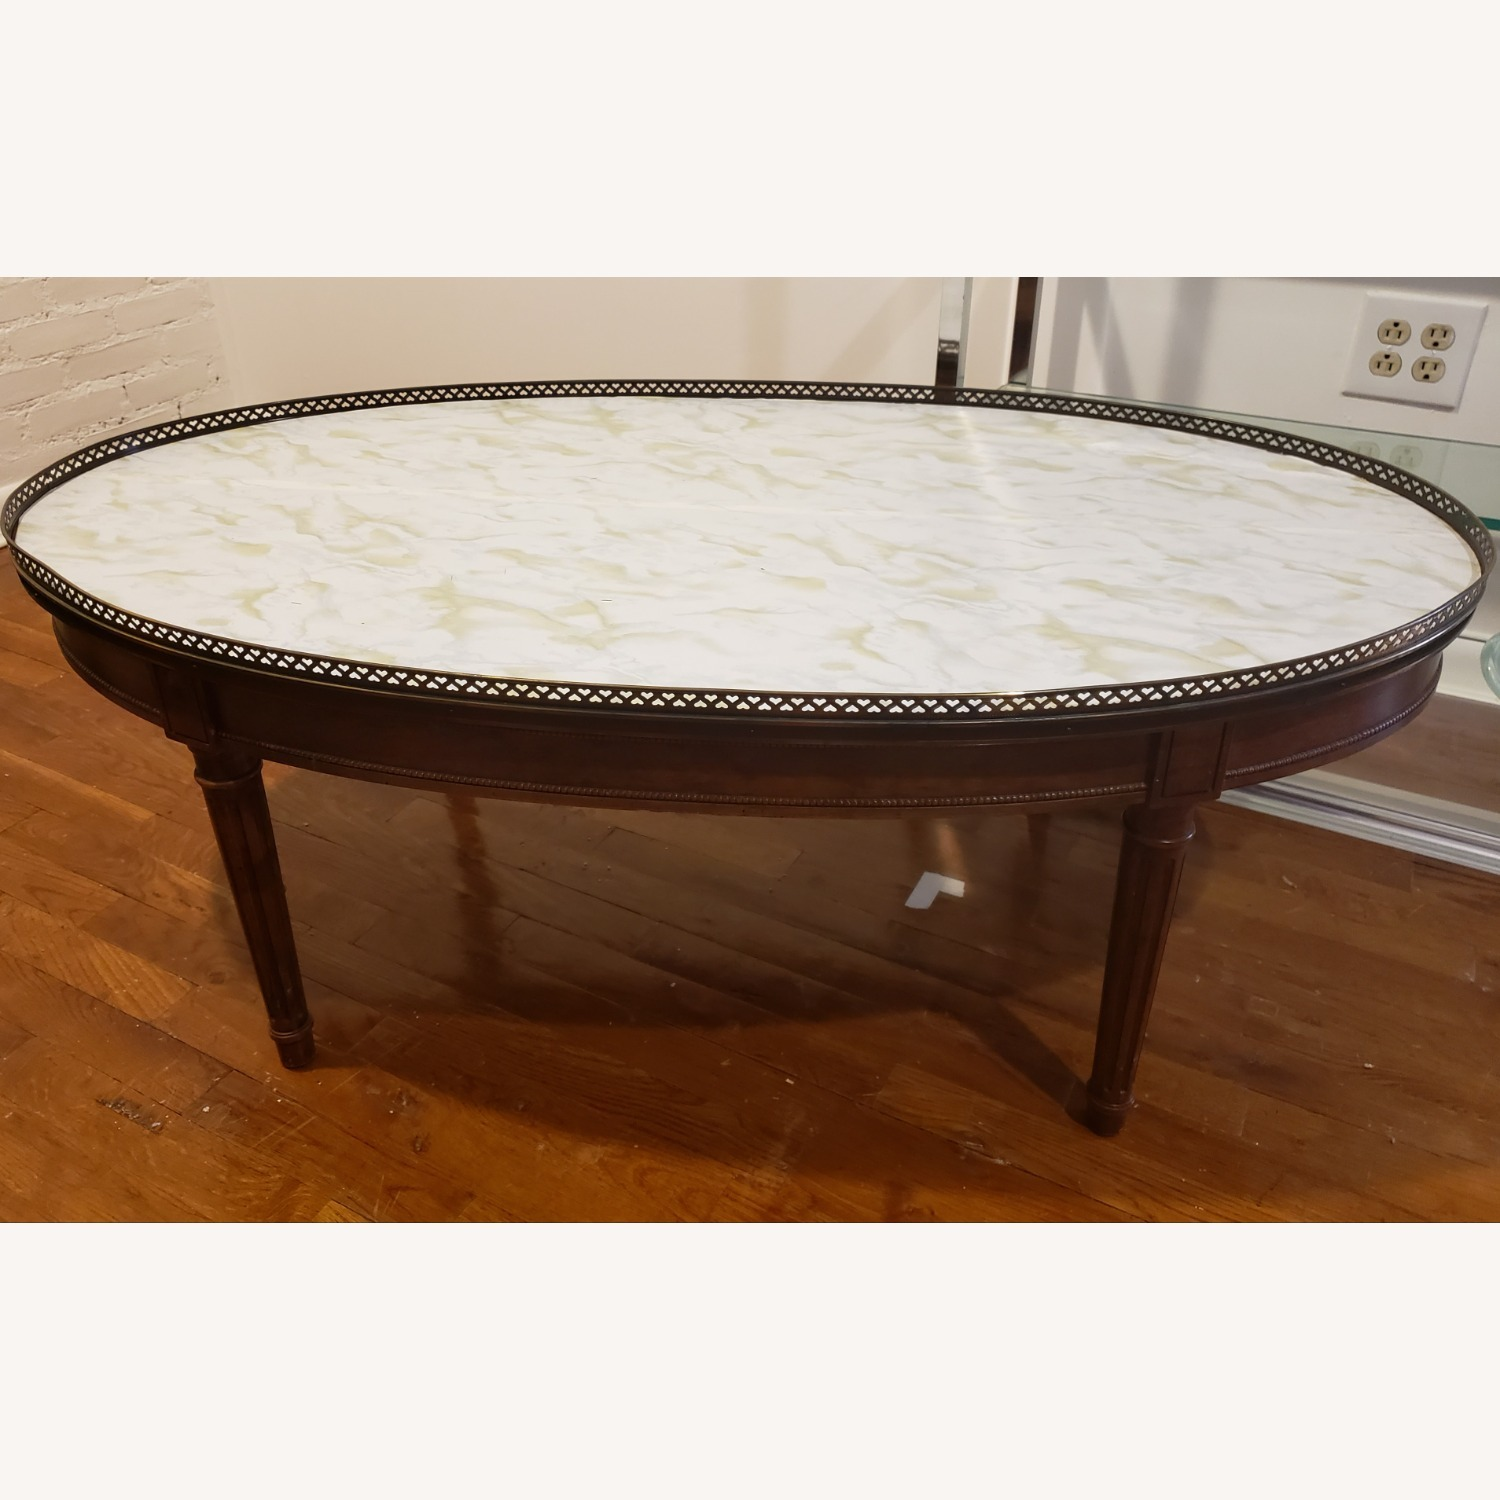 Baker Oval Wood Coffee Table - image-1